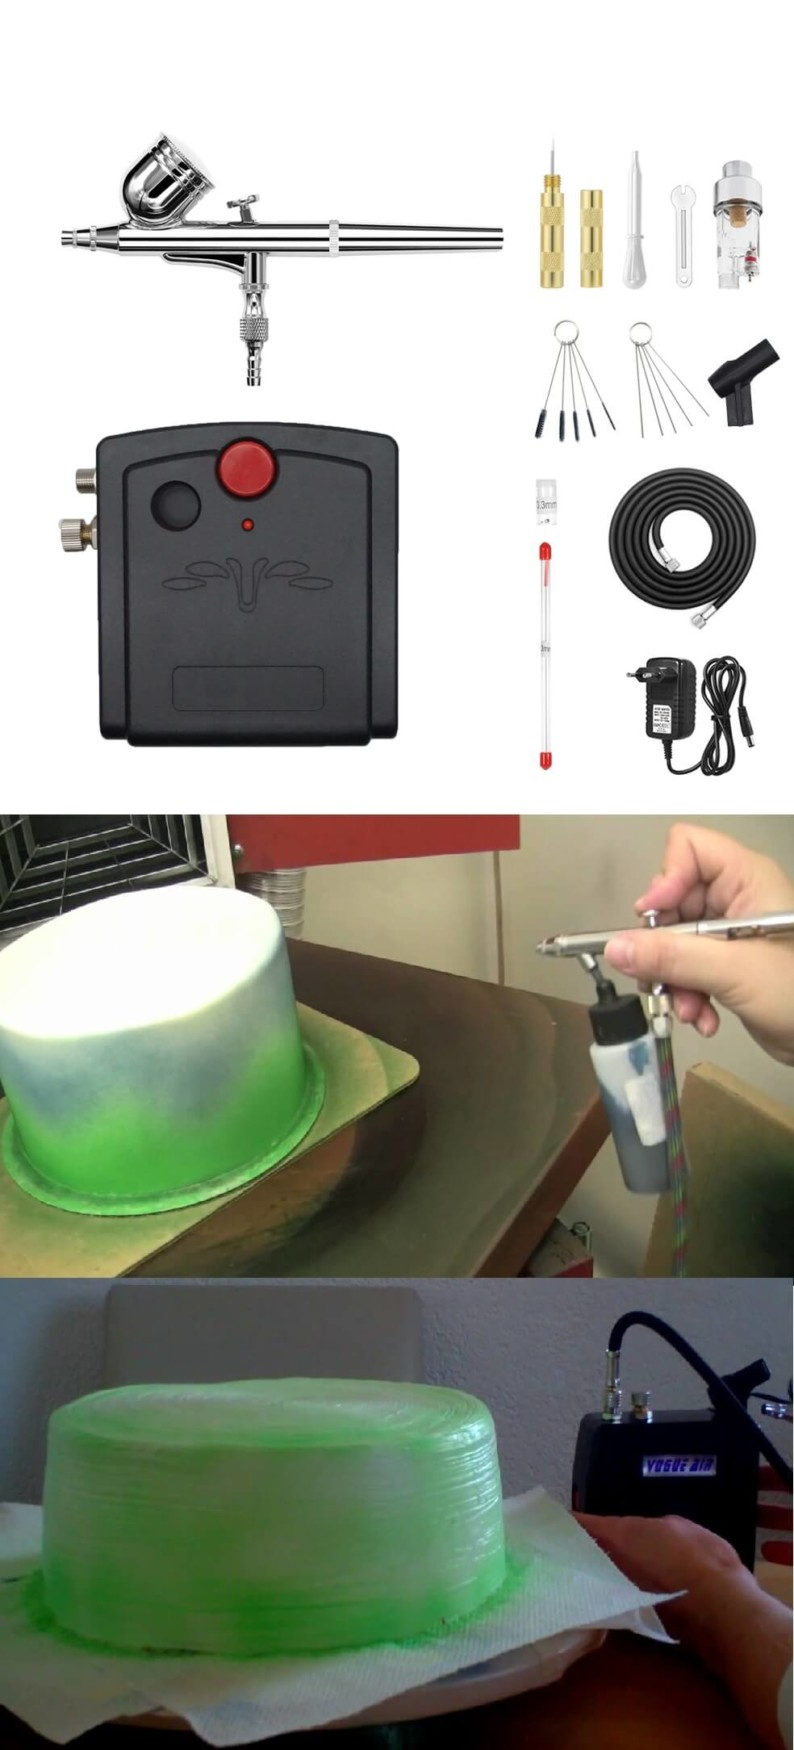 Cake Decorating Airbrush Gun, Paints, and Color | Best Cake Decorating Tools, Equipment and Supplies for Pro Decorators